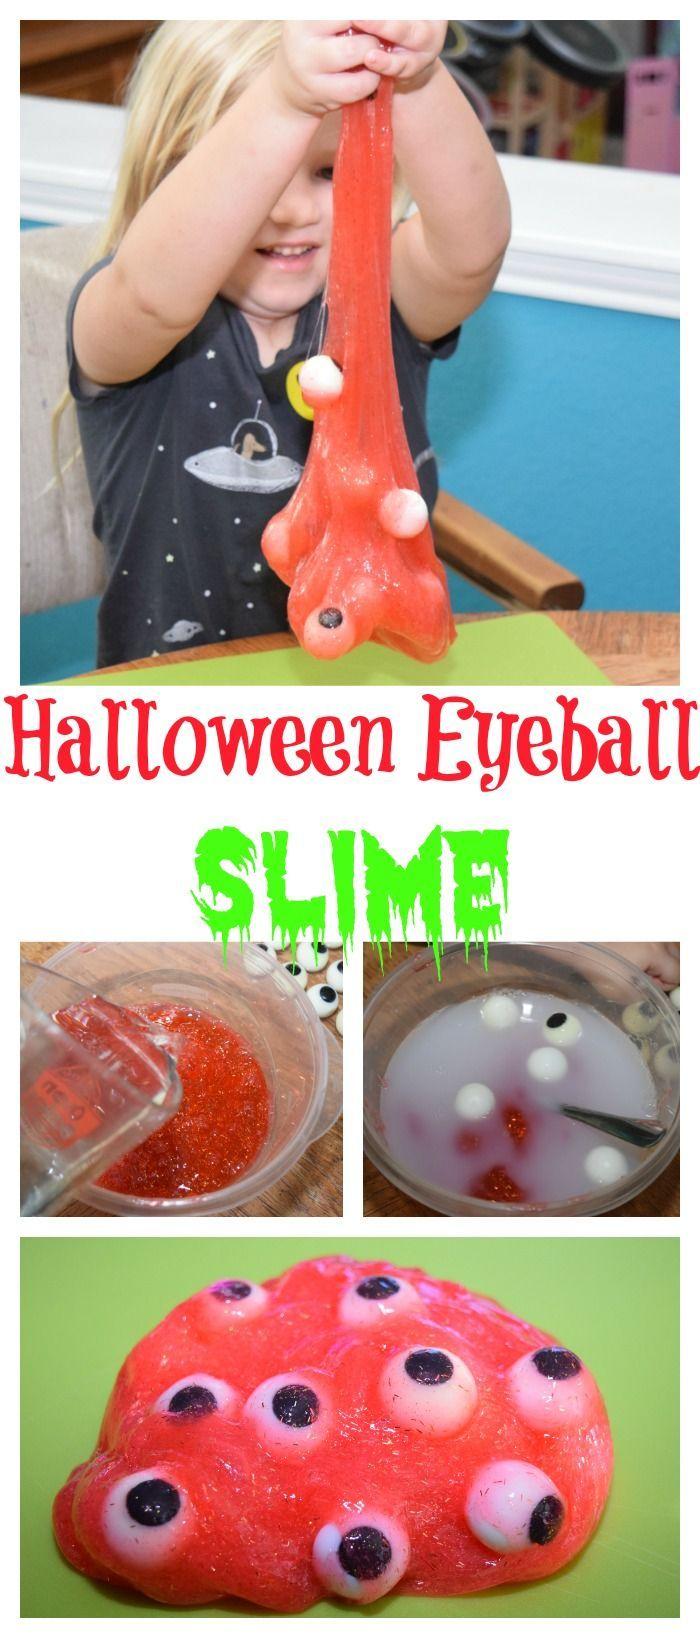 Your kids can have some gross out fun and help you make some DIY Halloween Eyeball Slime! It's a totally fun craft! And clean up is a breeze on little ones with #WaterWipesWalgreens #ad